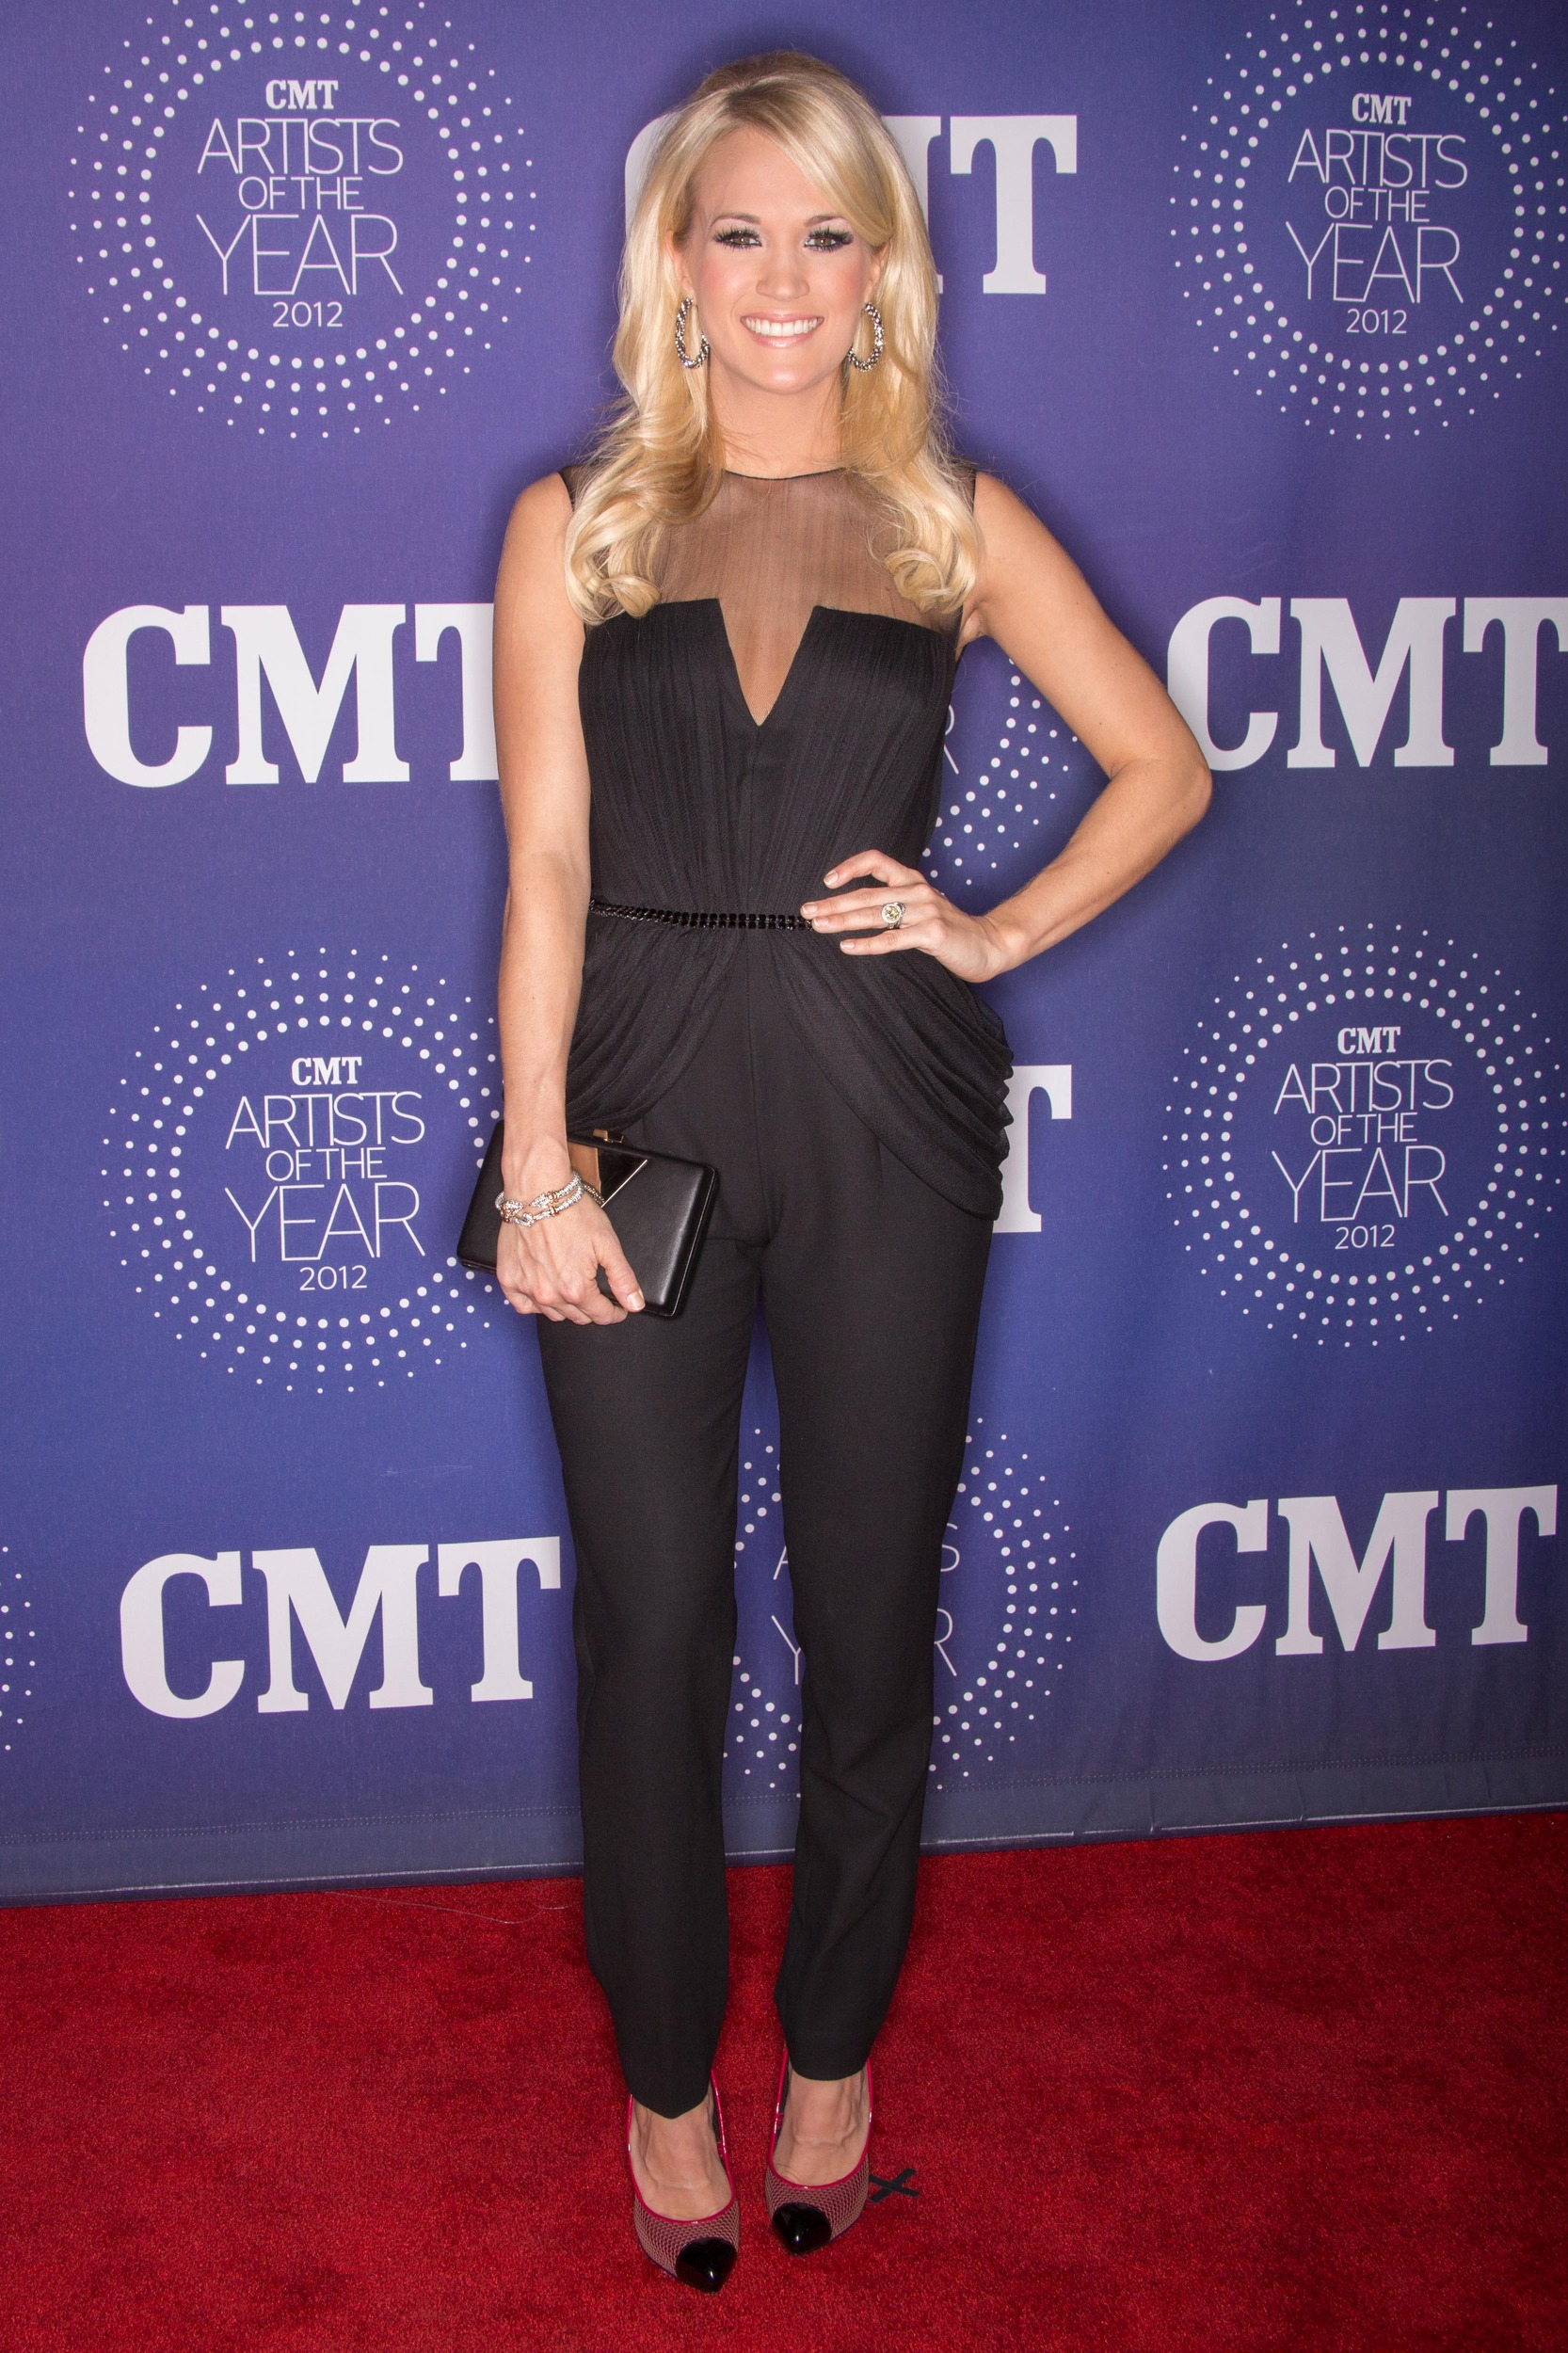 Carrie Underwood Launches Fitness Clothing Line Cambio